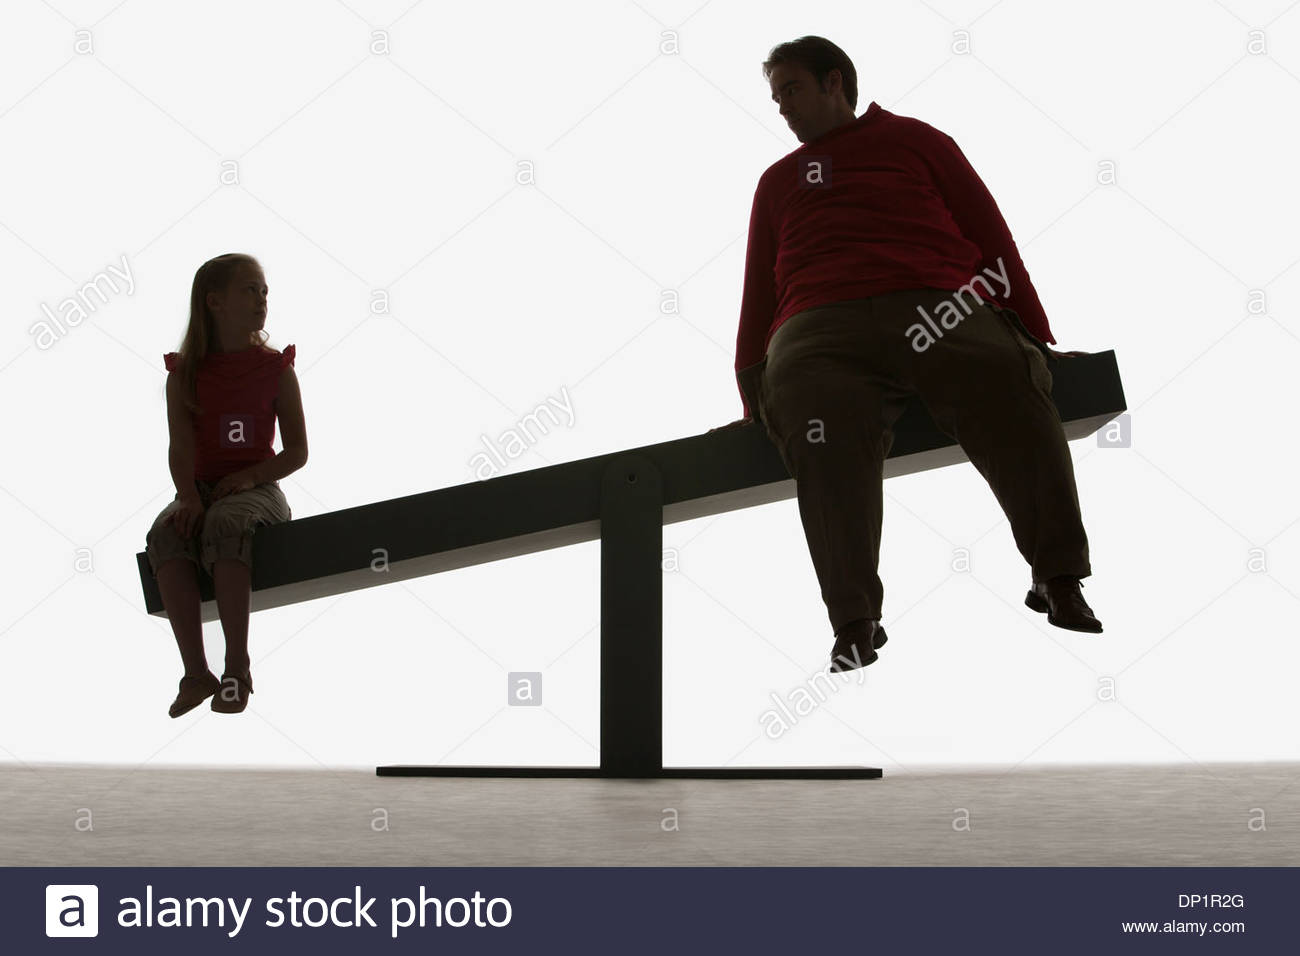 Man and girl sitting on ends of a plank - Stock Image